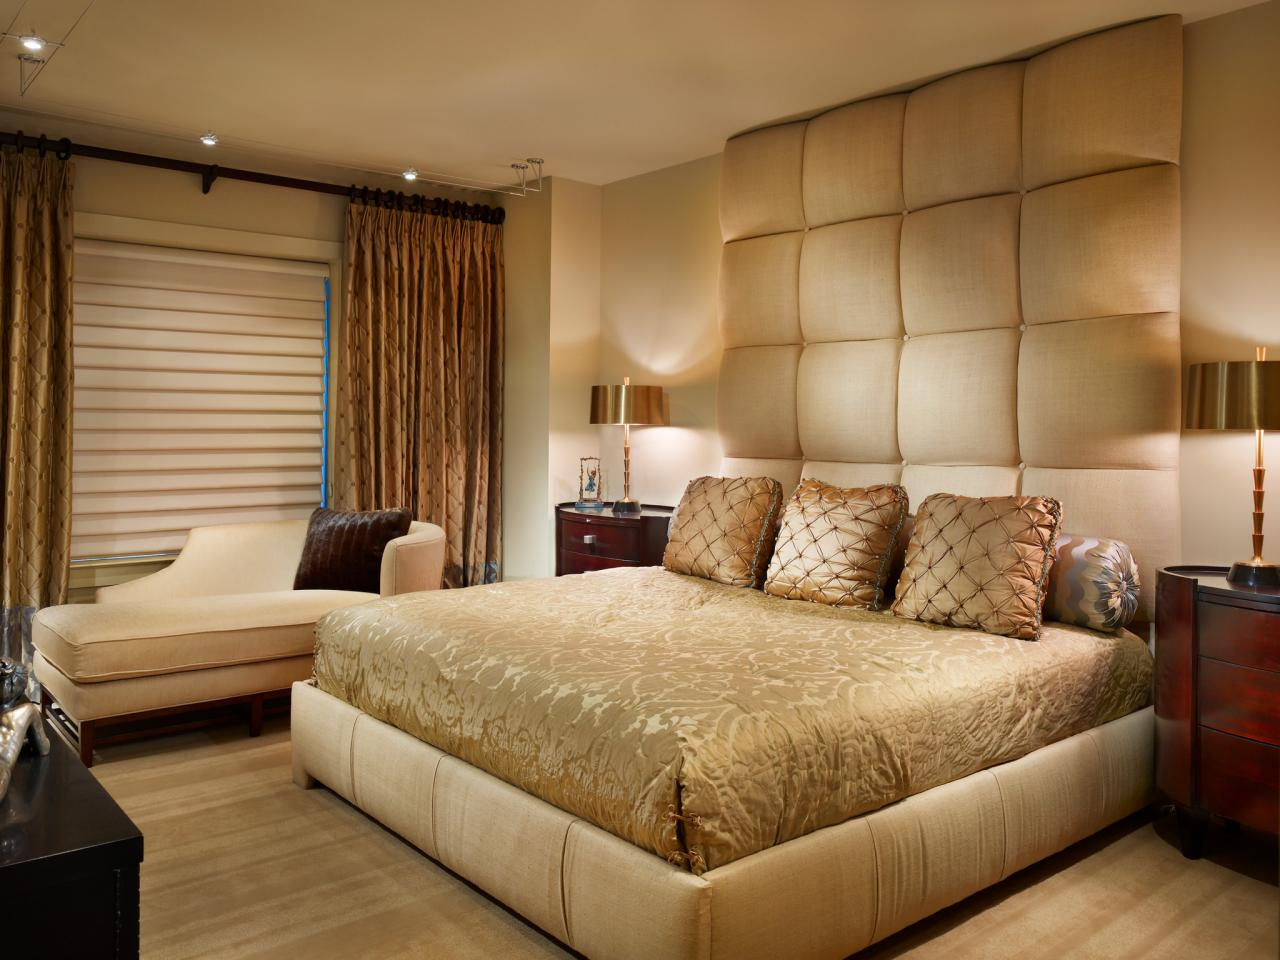 Contemporary bedroom design for your home 5